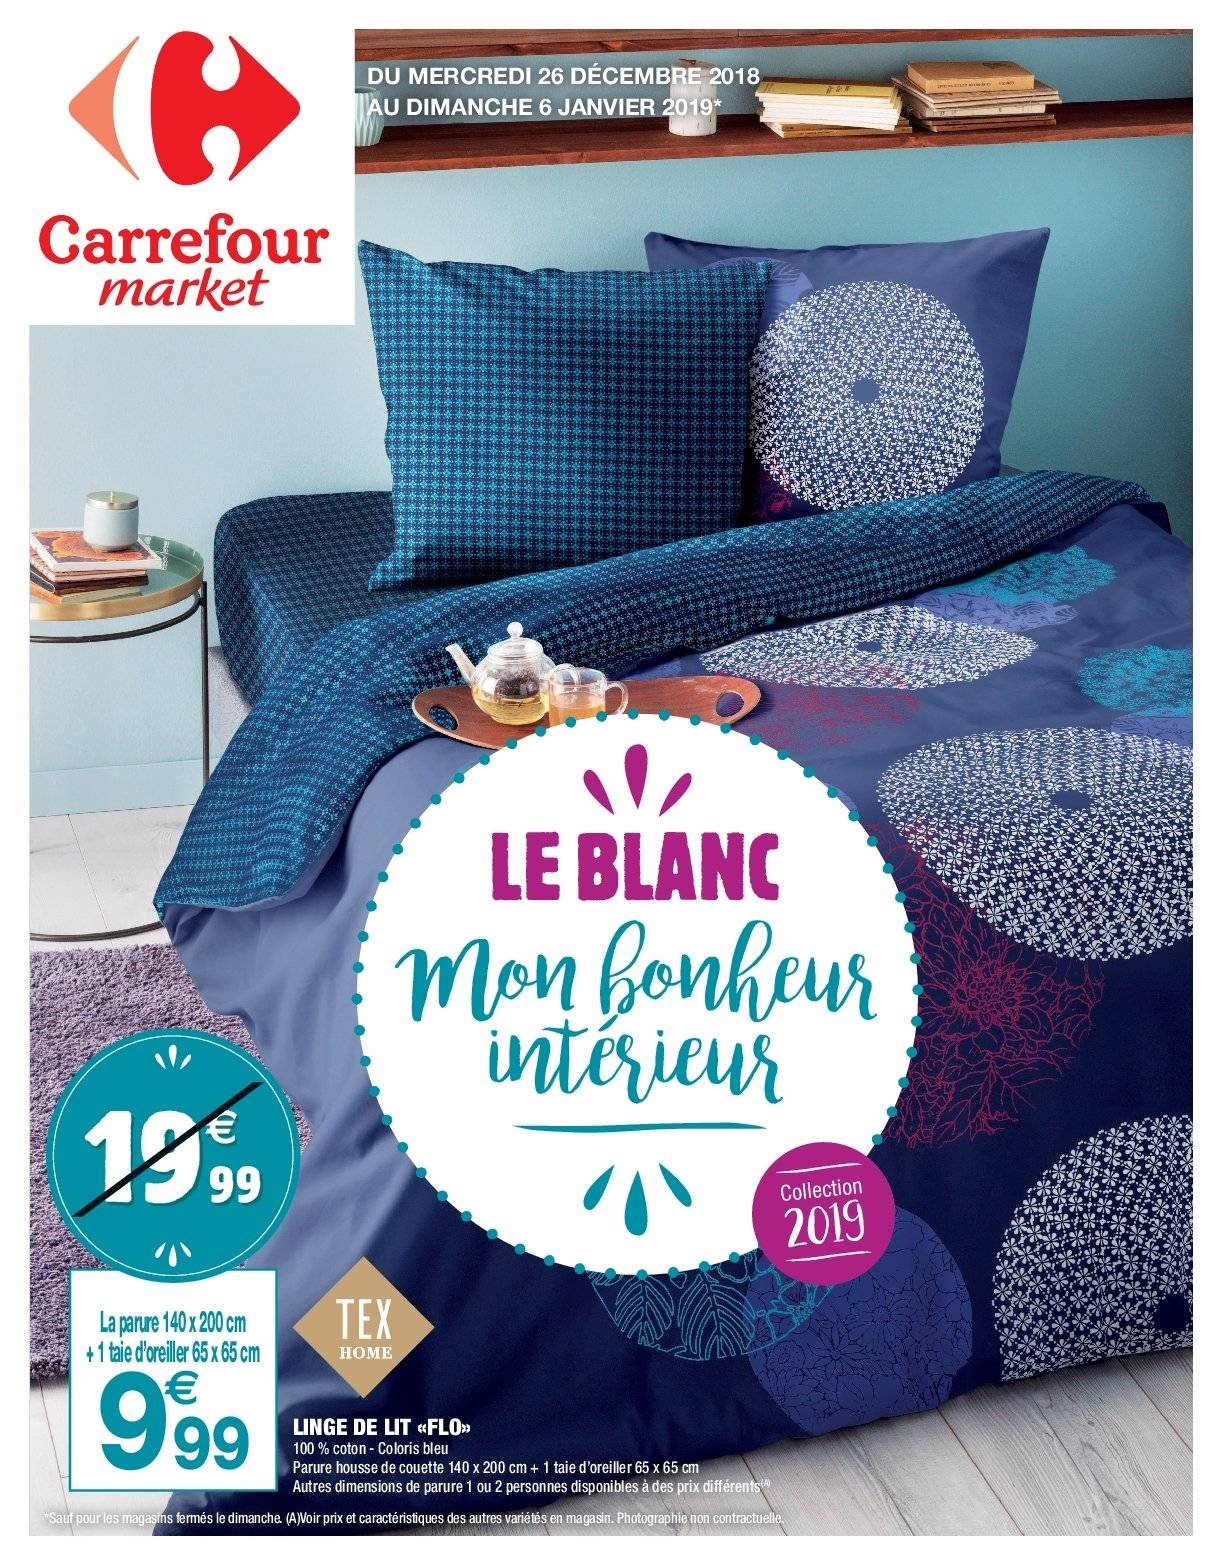 Catalogue Carrefour - 26.12.2018 - 06.01.2019. Page 1.